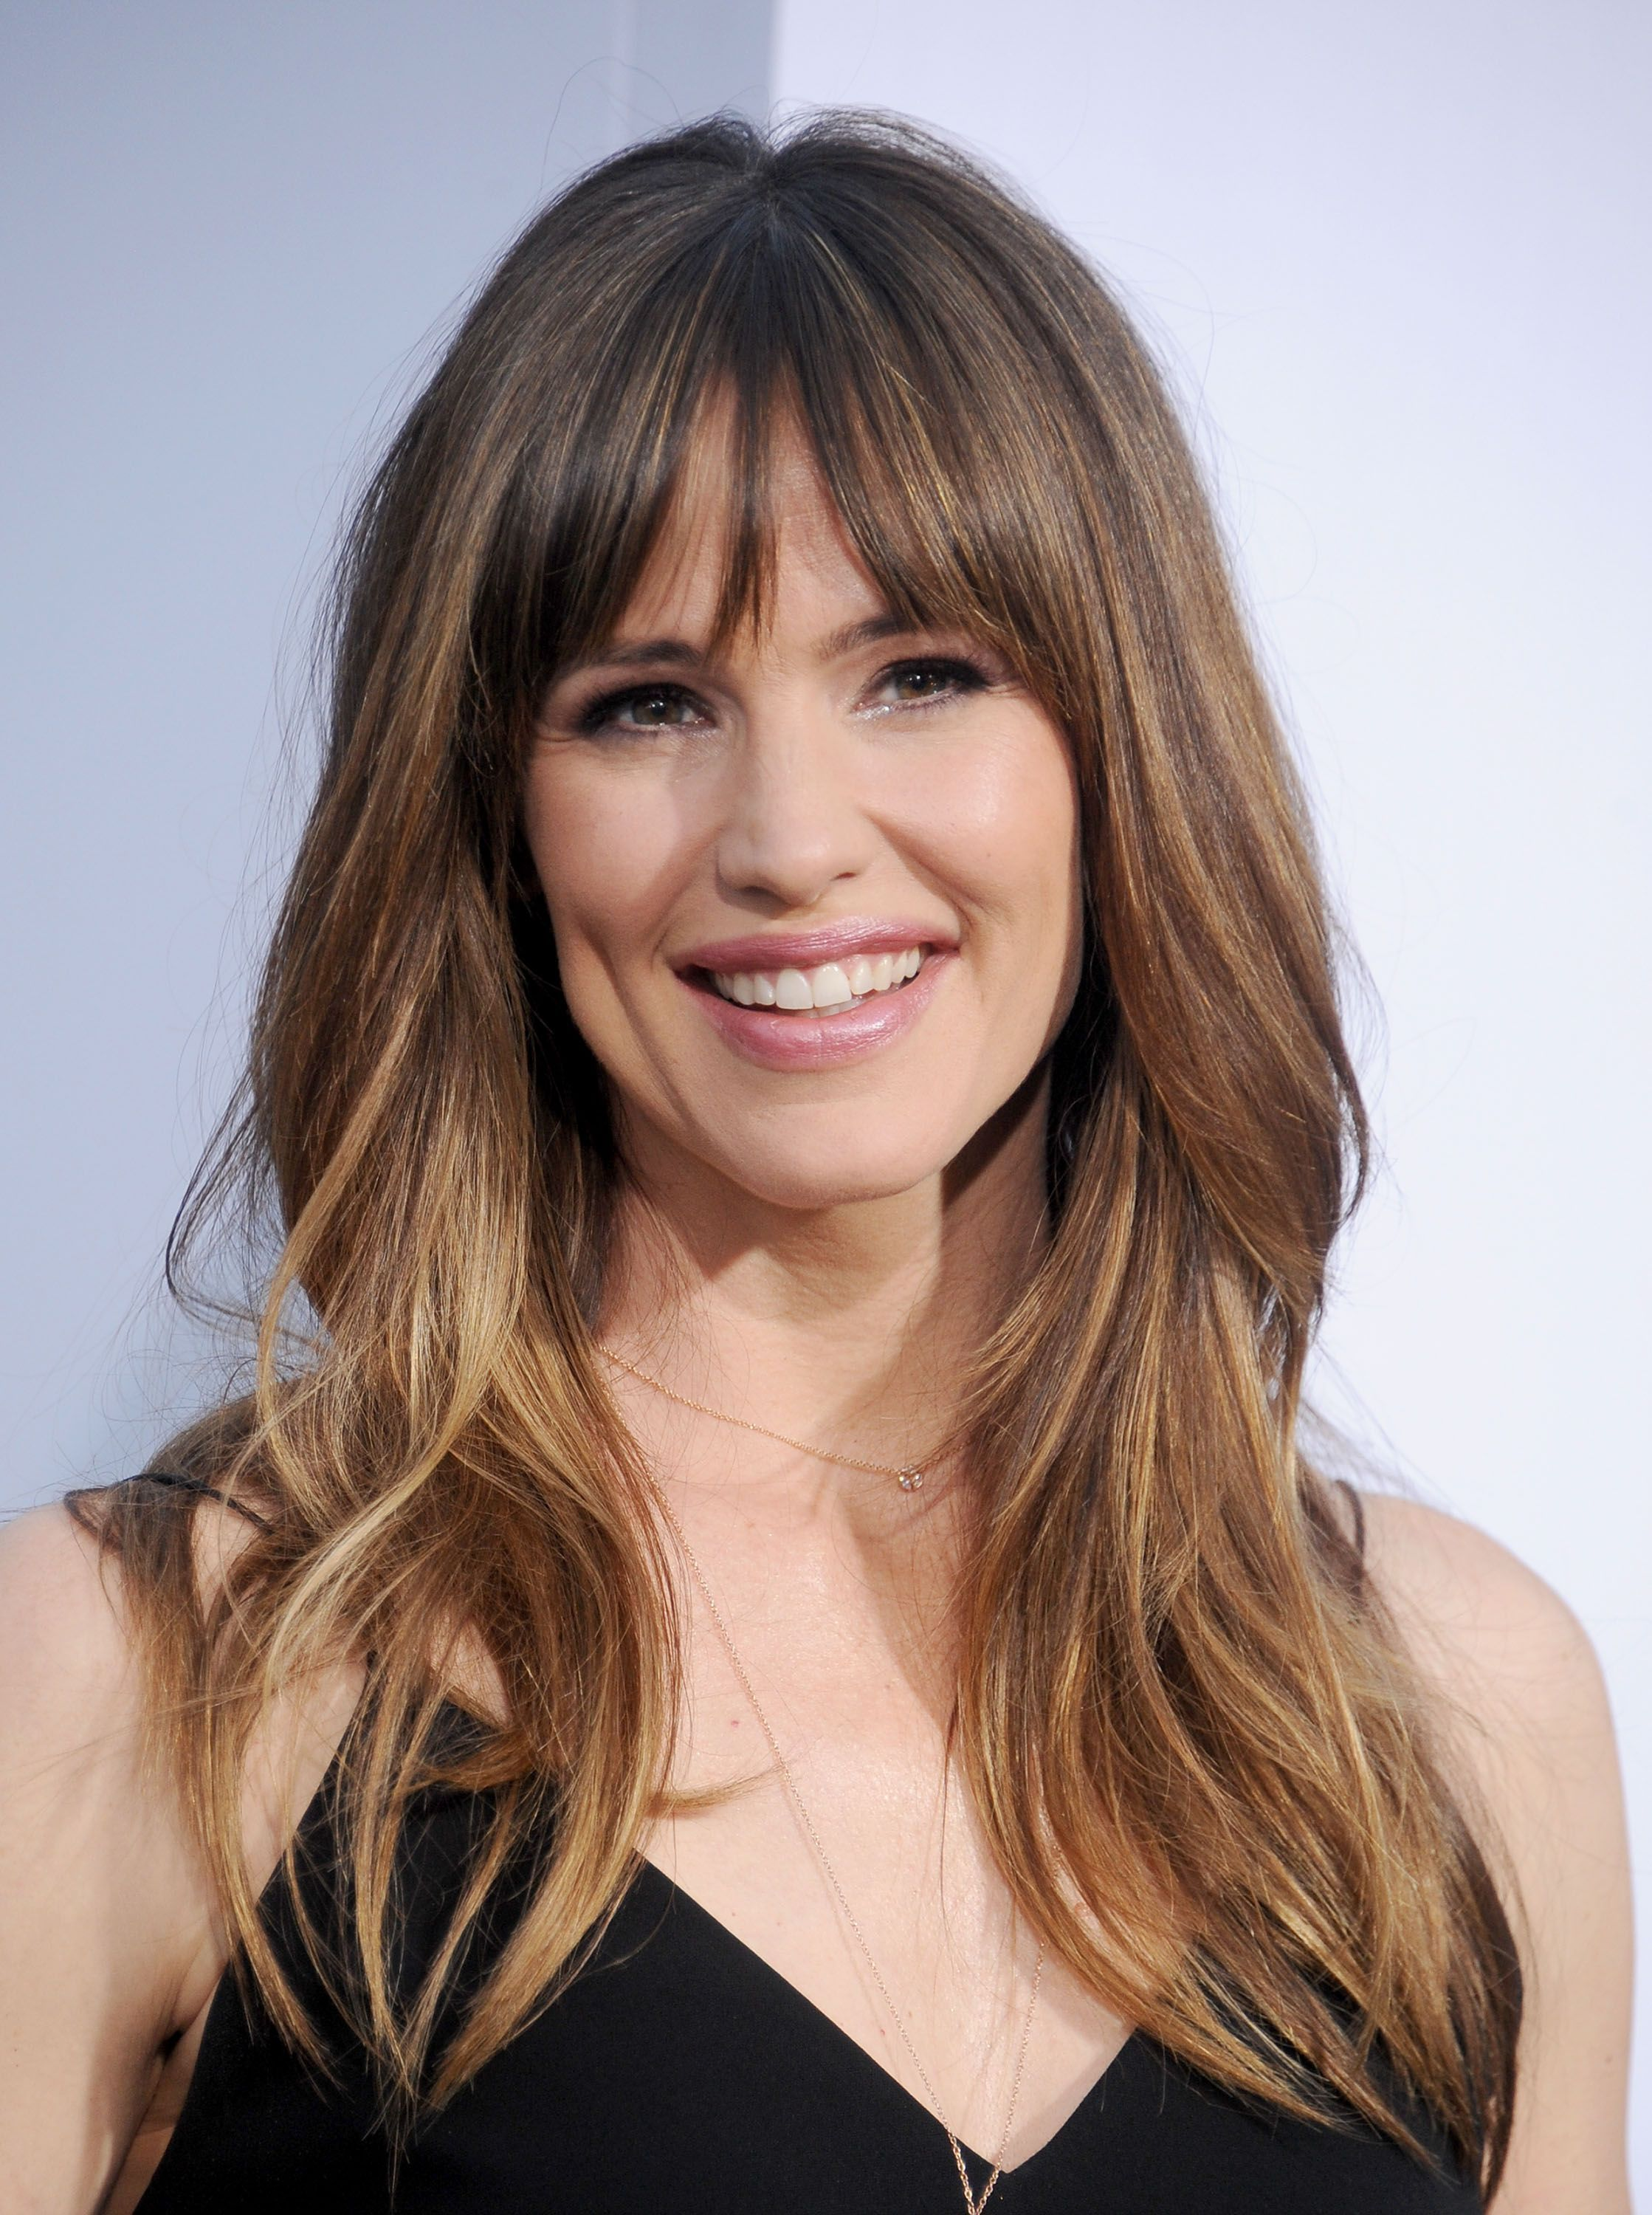 Behati s Got Bangs—10 Dos and Don ts if You Want Them Too